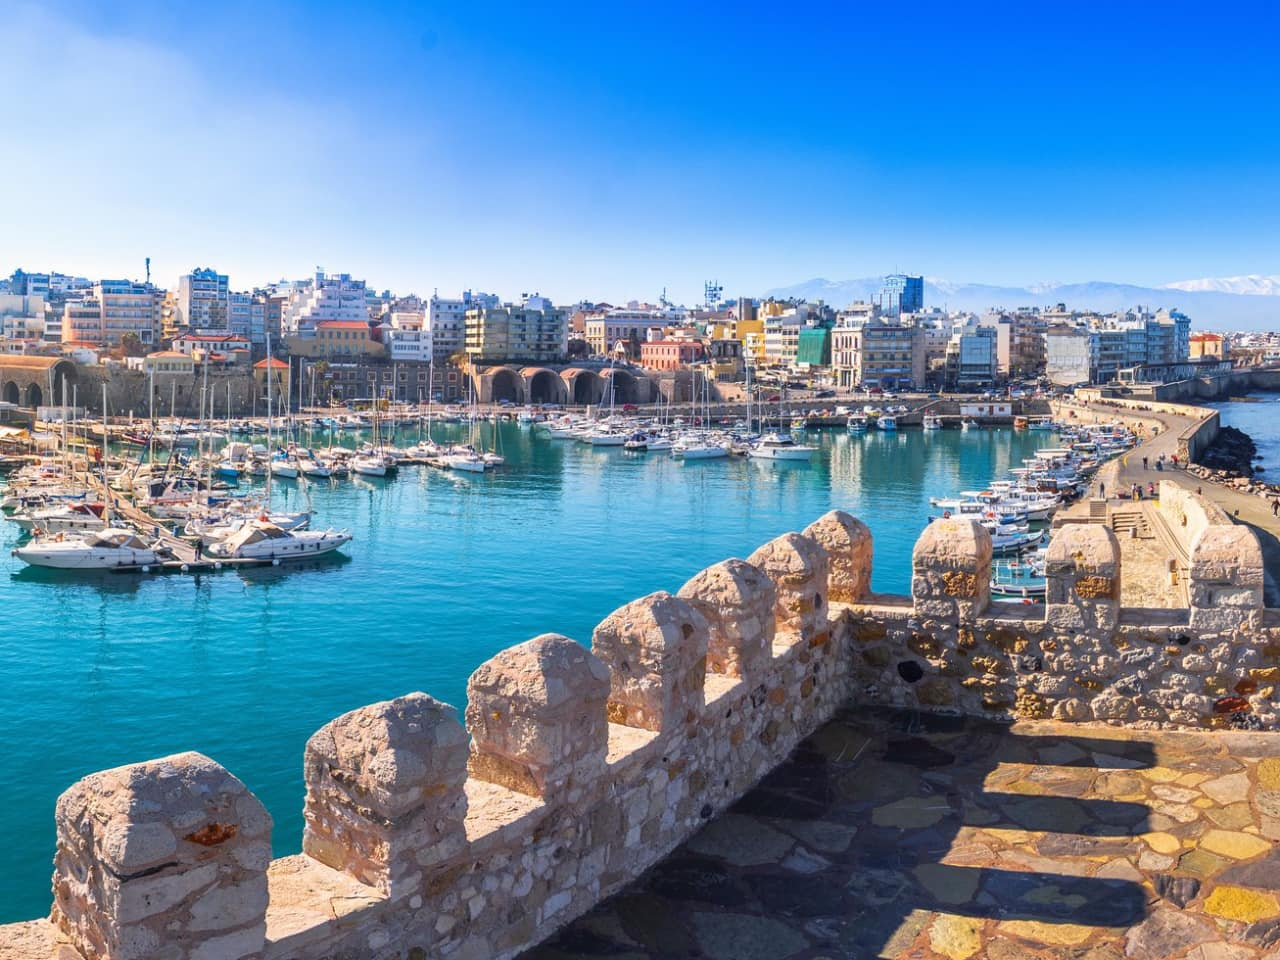 koules fortress heraklion crete, meet the minotaur, Palace of Knossos and the Archaeological Museum of Heraklion, historical tour knossos, historical tour heraklion crete, chania excursion tour to knossos and archaeological museum heraklion